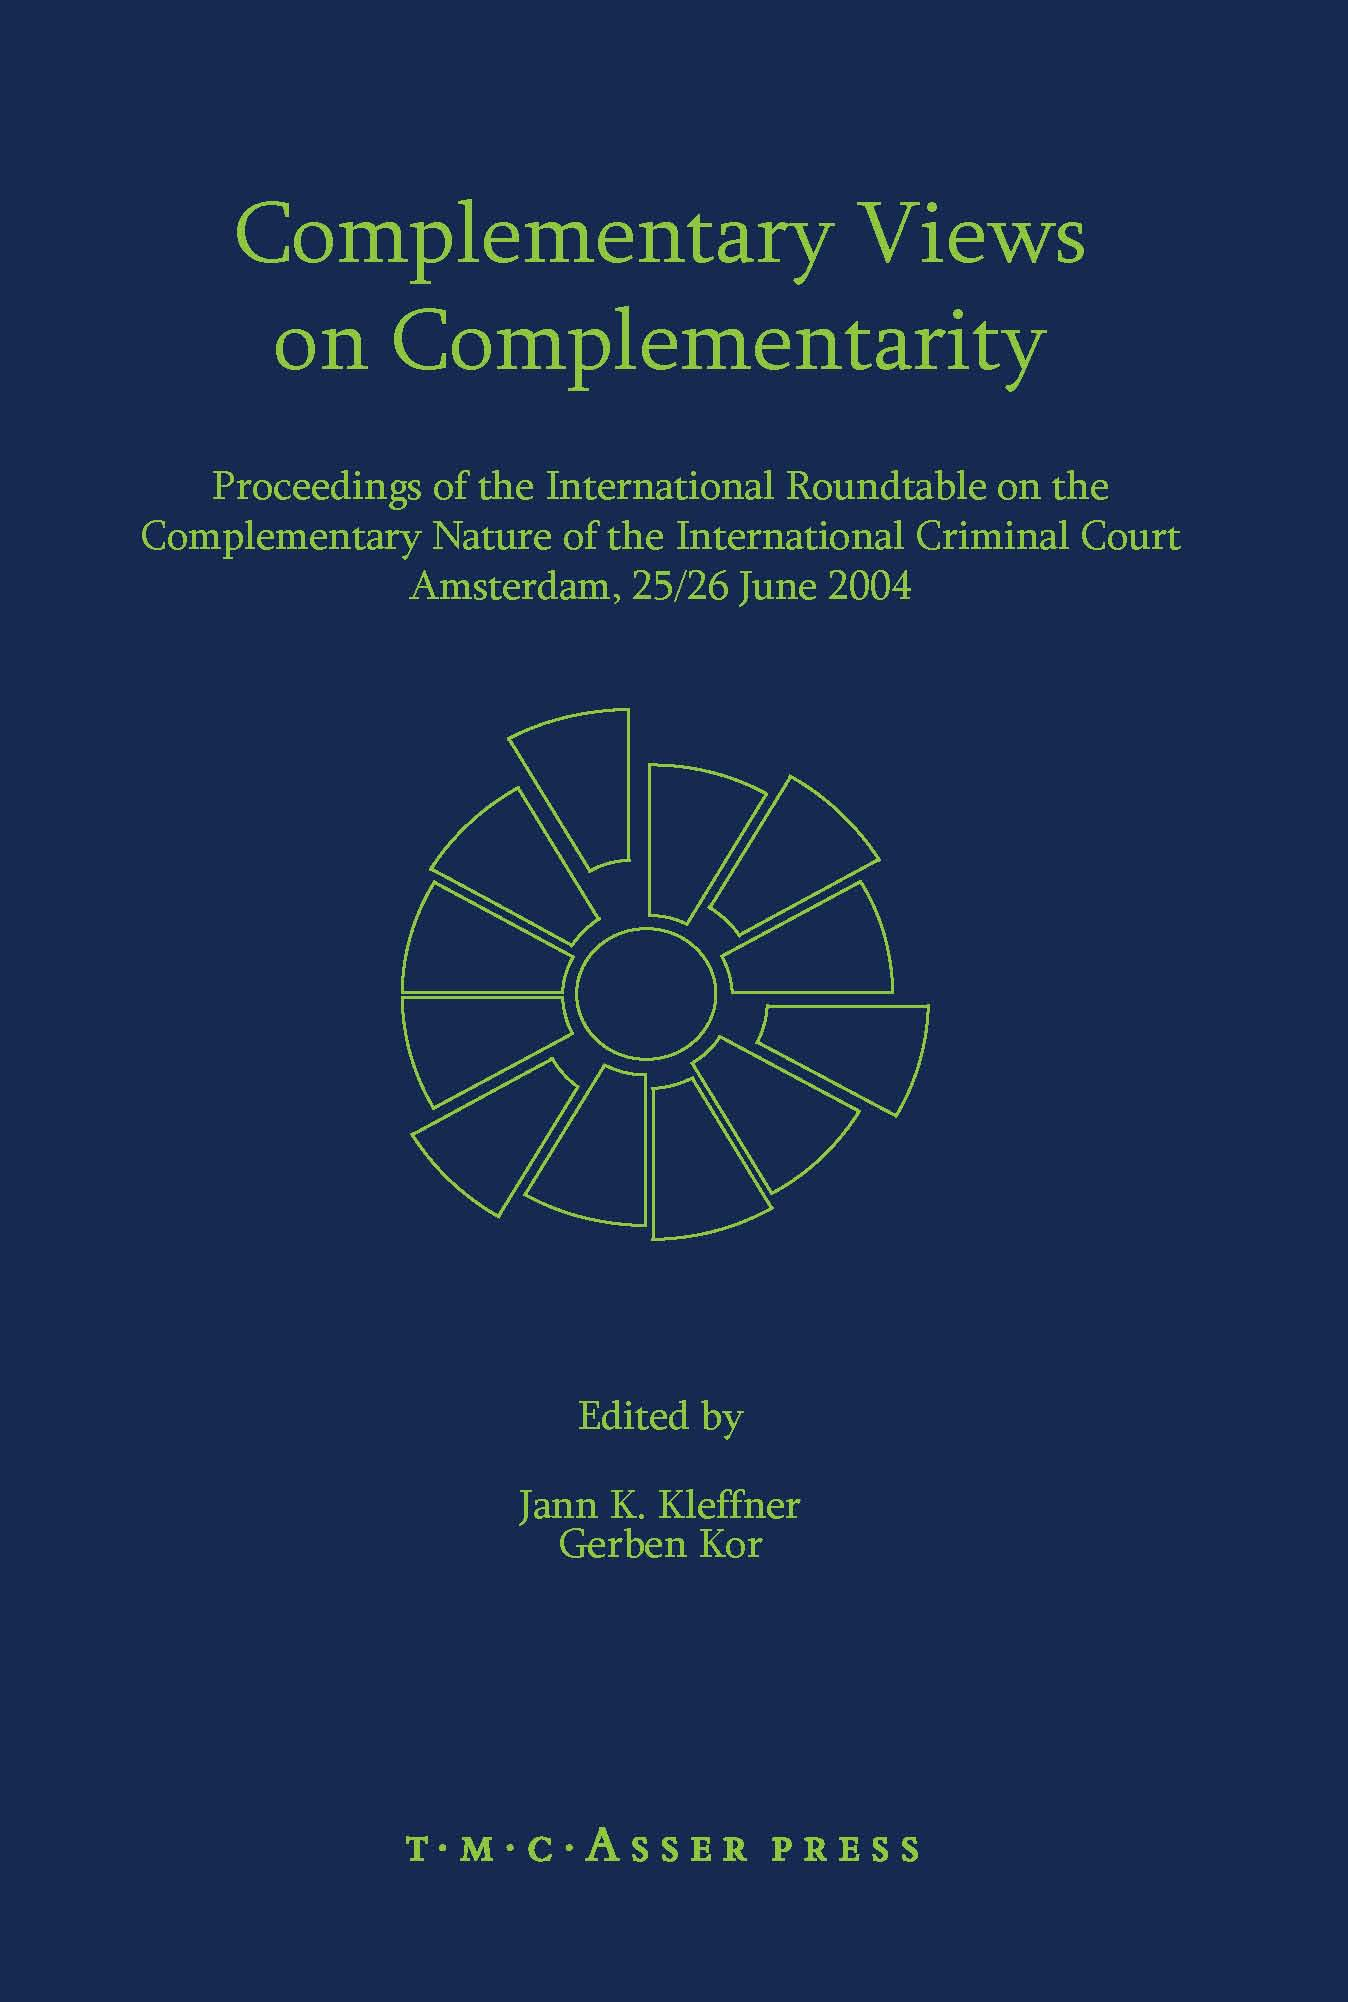 Complementary Views on Complementarity - Proceedings of the International Roundtable on the Complementary Nature of the International Criminal Court, Amsterdam 25/26 June 2004